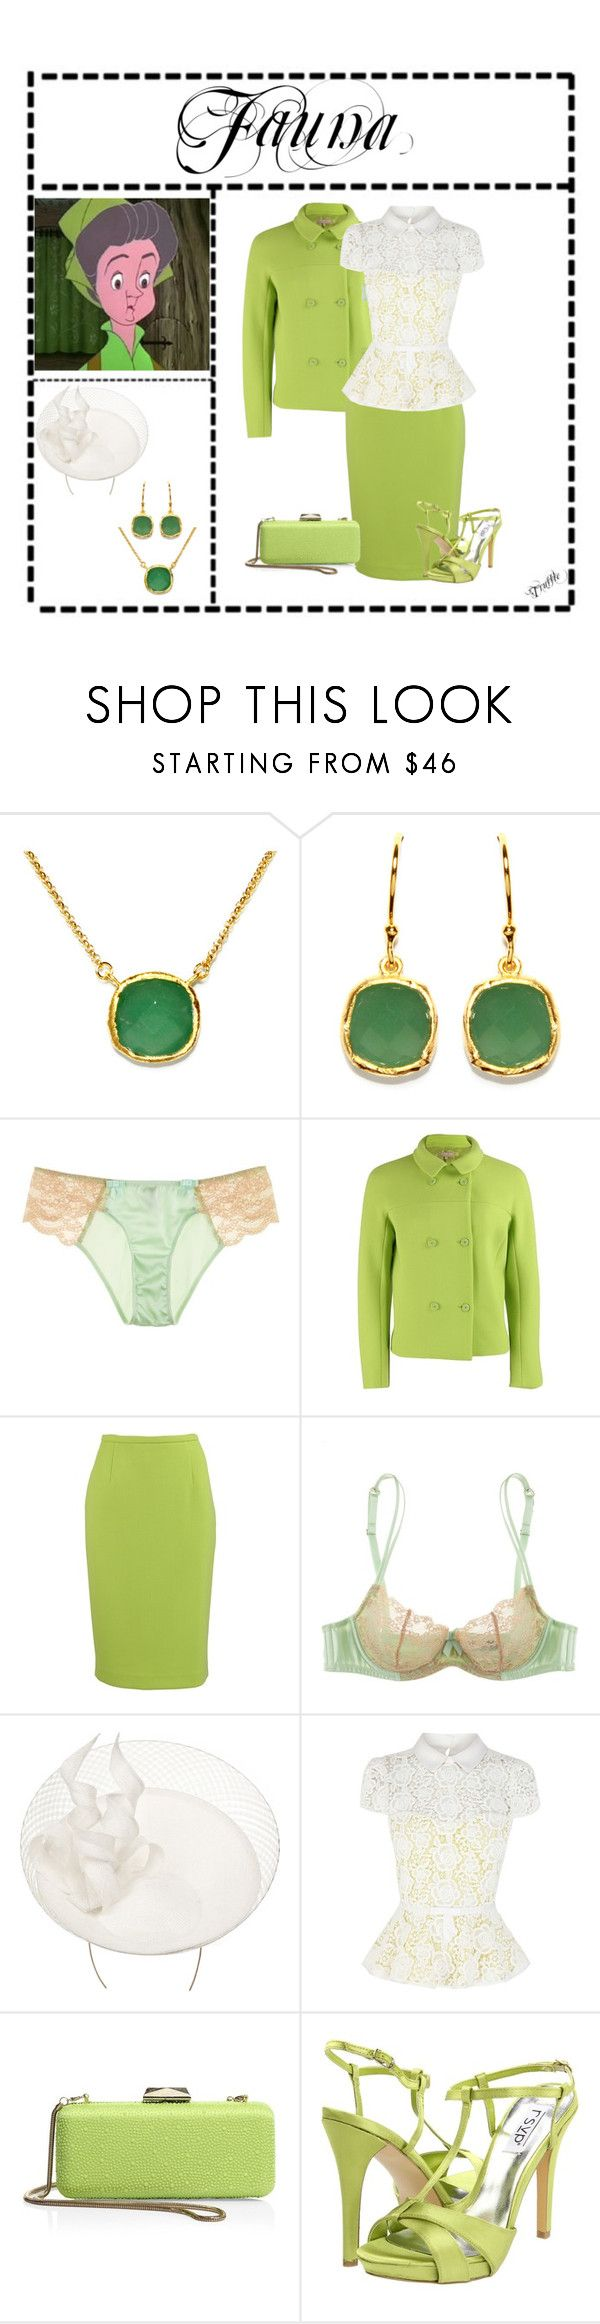 """""""Fauna (1755)"""" by trufflelover ❤ liked on Polyvore featuring Fallon, BillyTheTree, Myla, Michael Kors, Philip Treacy, Karen Millen, Saks Fifth Avenue Collection and rsvp"""